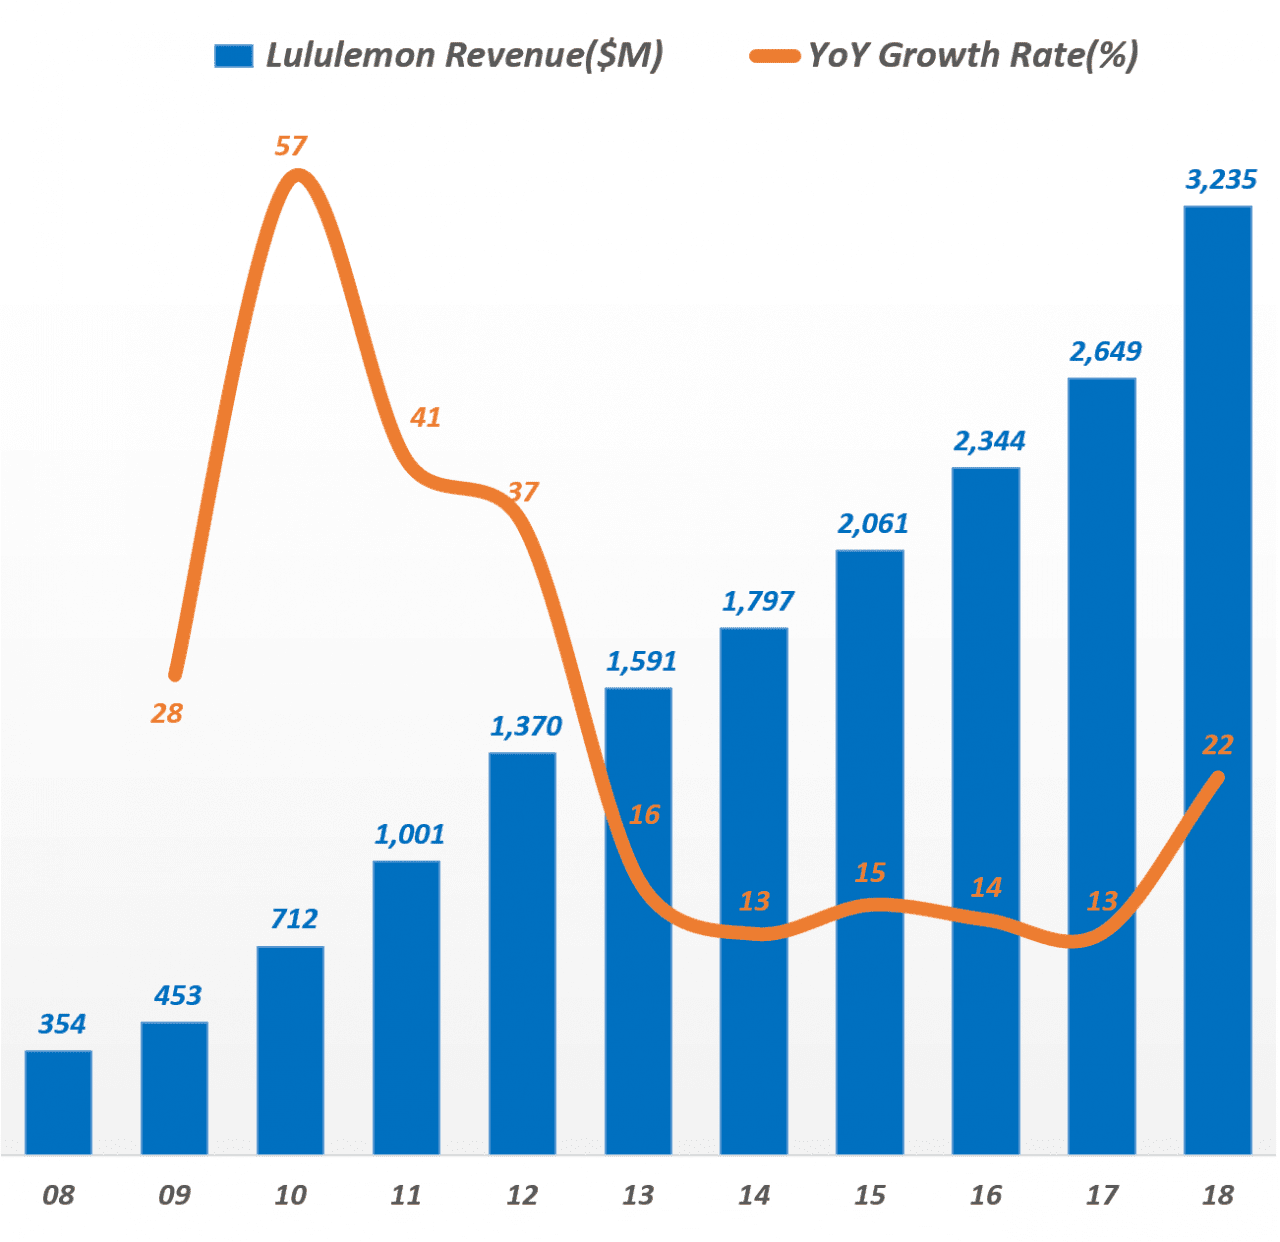 룰루레몬 연도별 매출액 추이, Yearly Lululemon Revenue(2008 ~ 2018), Graph by Happist